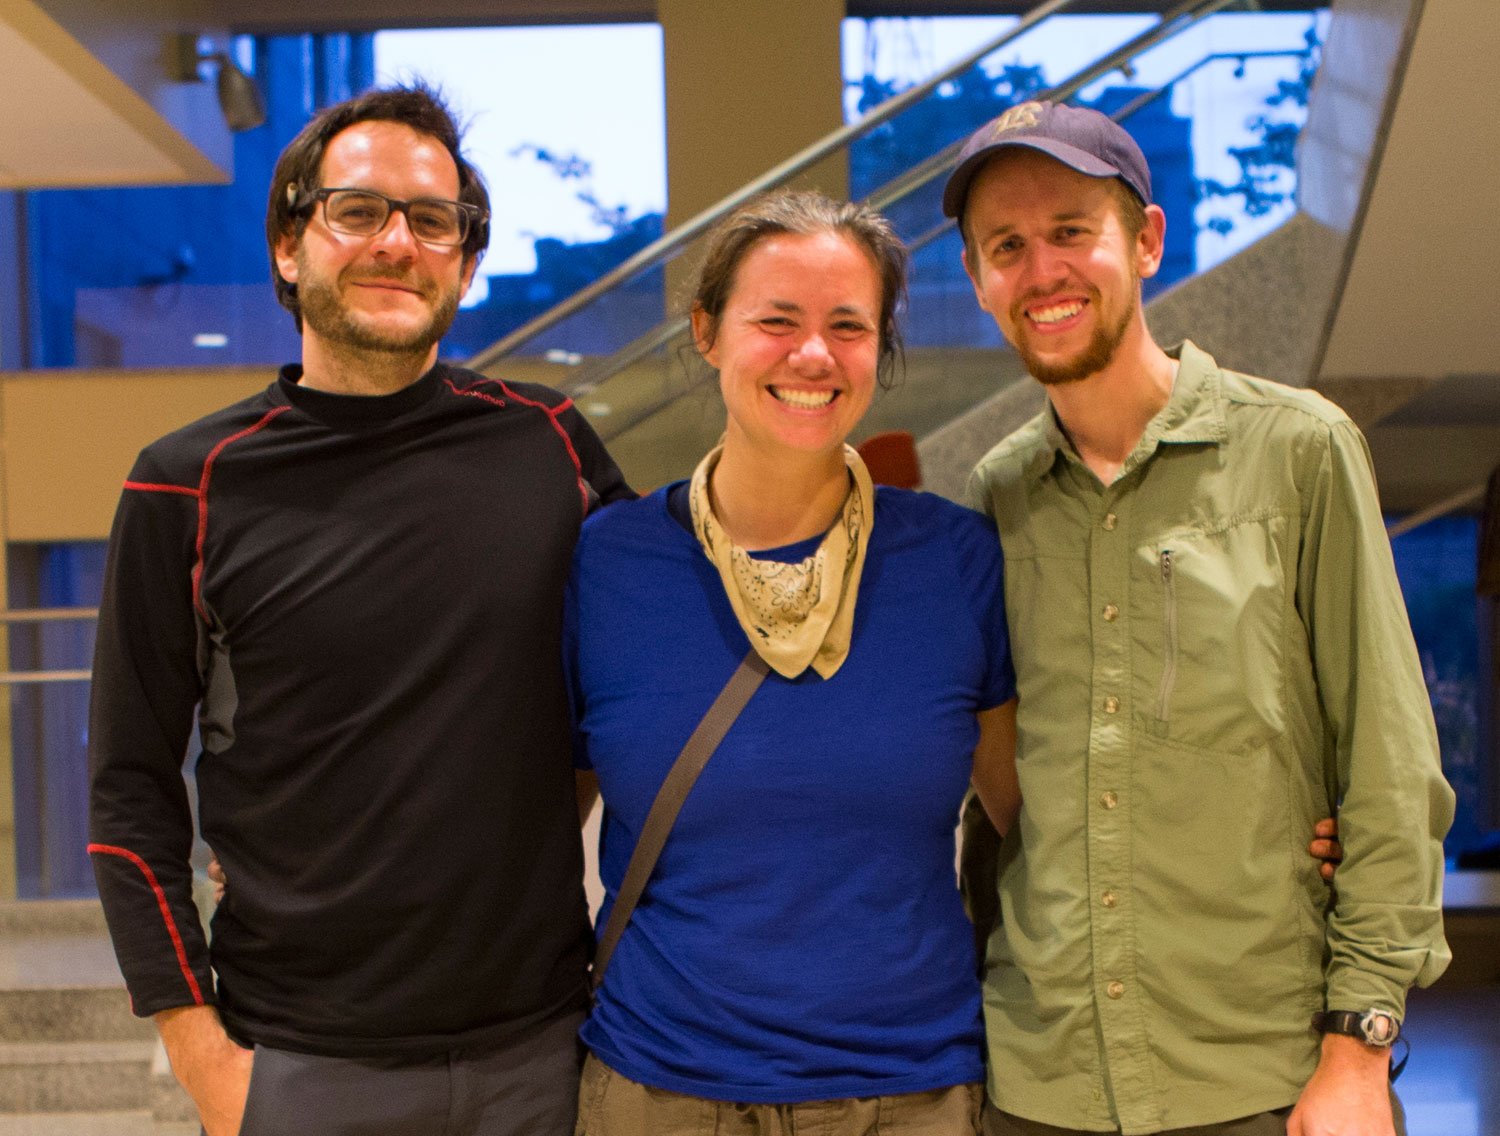 Corey Ascolani, 34, Della Hoffman, 31, and Eric Jean, 32, at the U.S. Embassy in Kathmandu, Nepal, on April 30, 2015